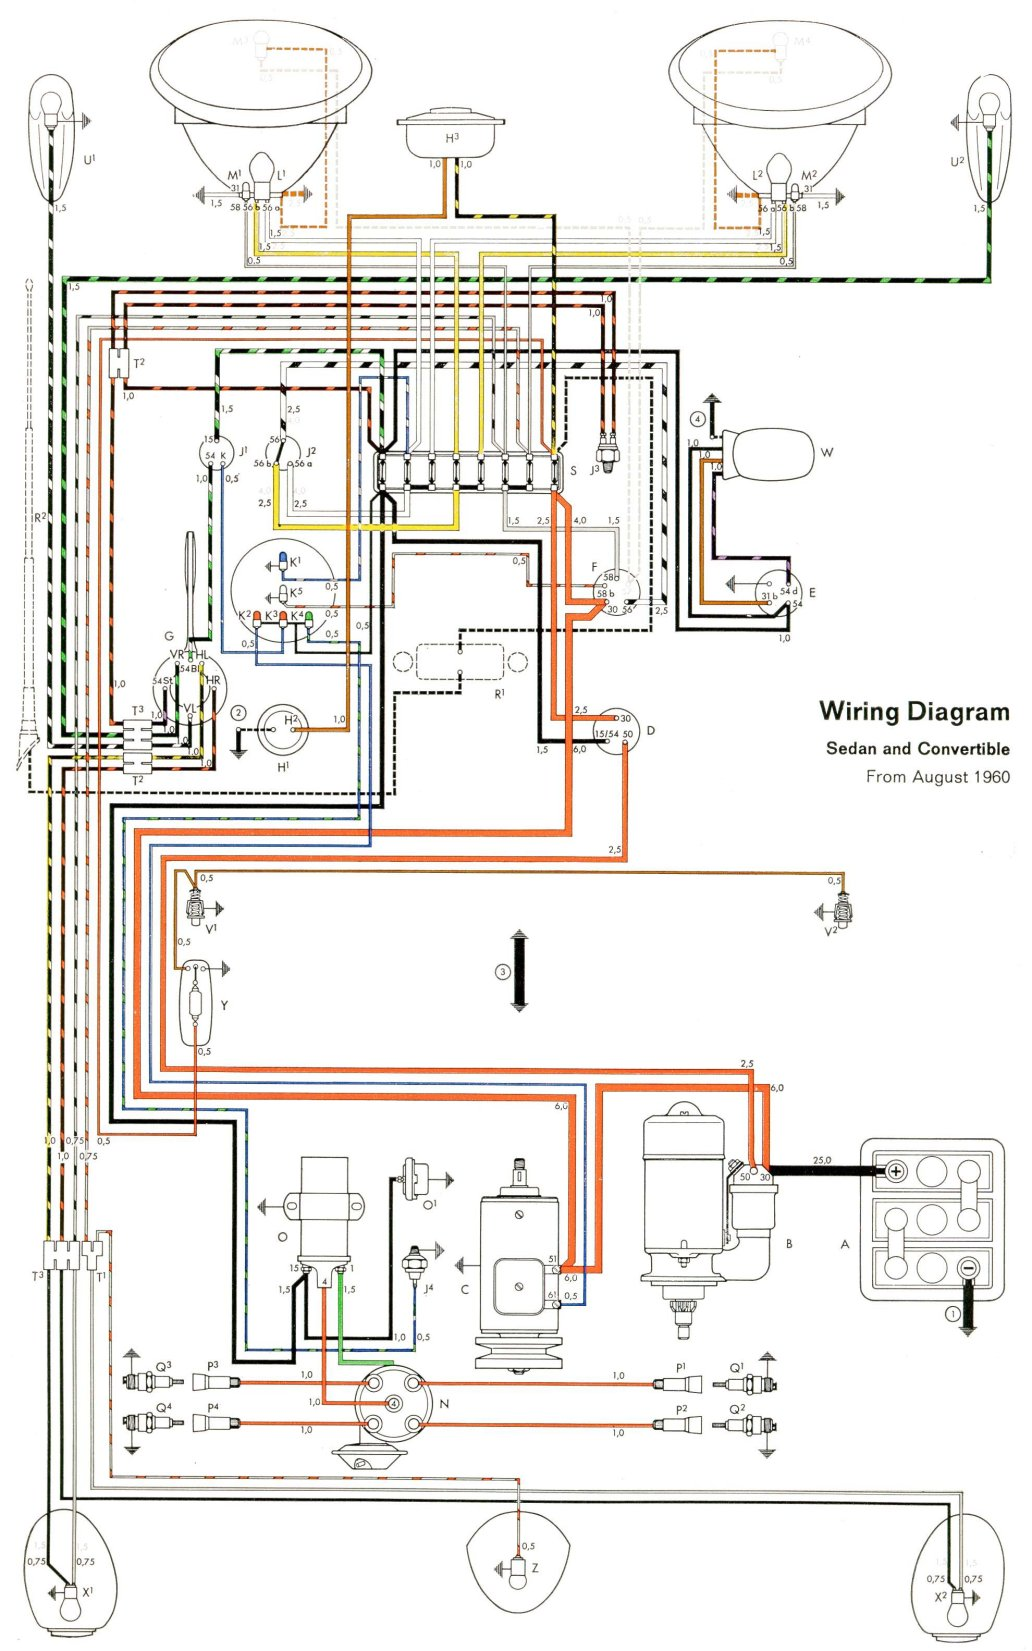 Free Auto Wiring Diagram 1966 Vw Beetle 1300 Diagrams Thesamba Com Type 1